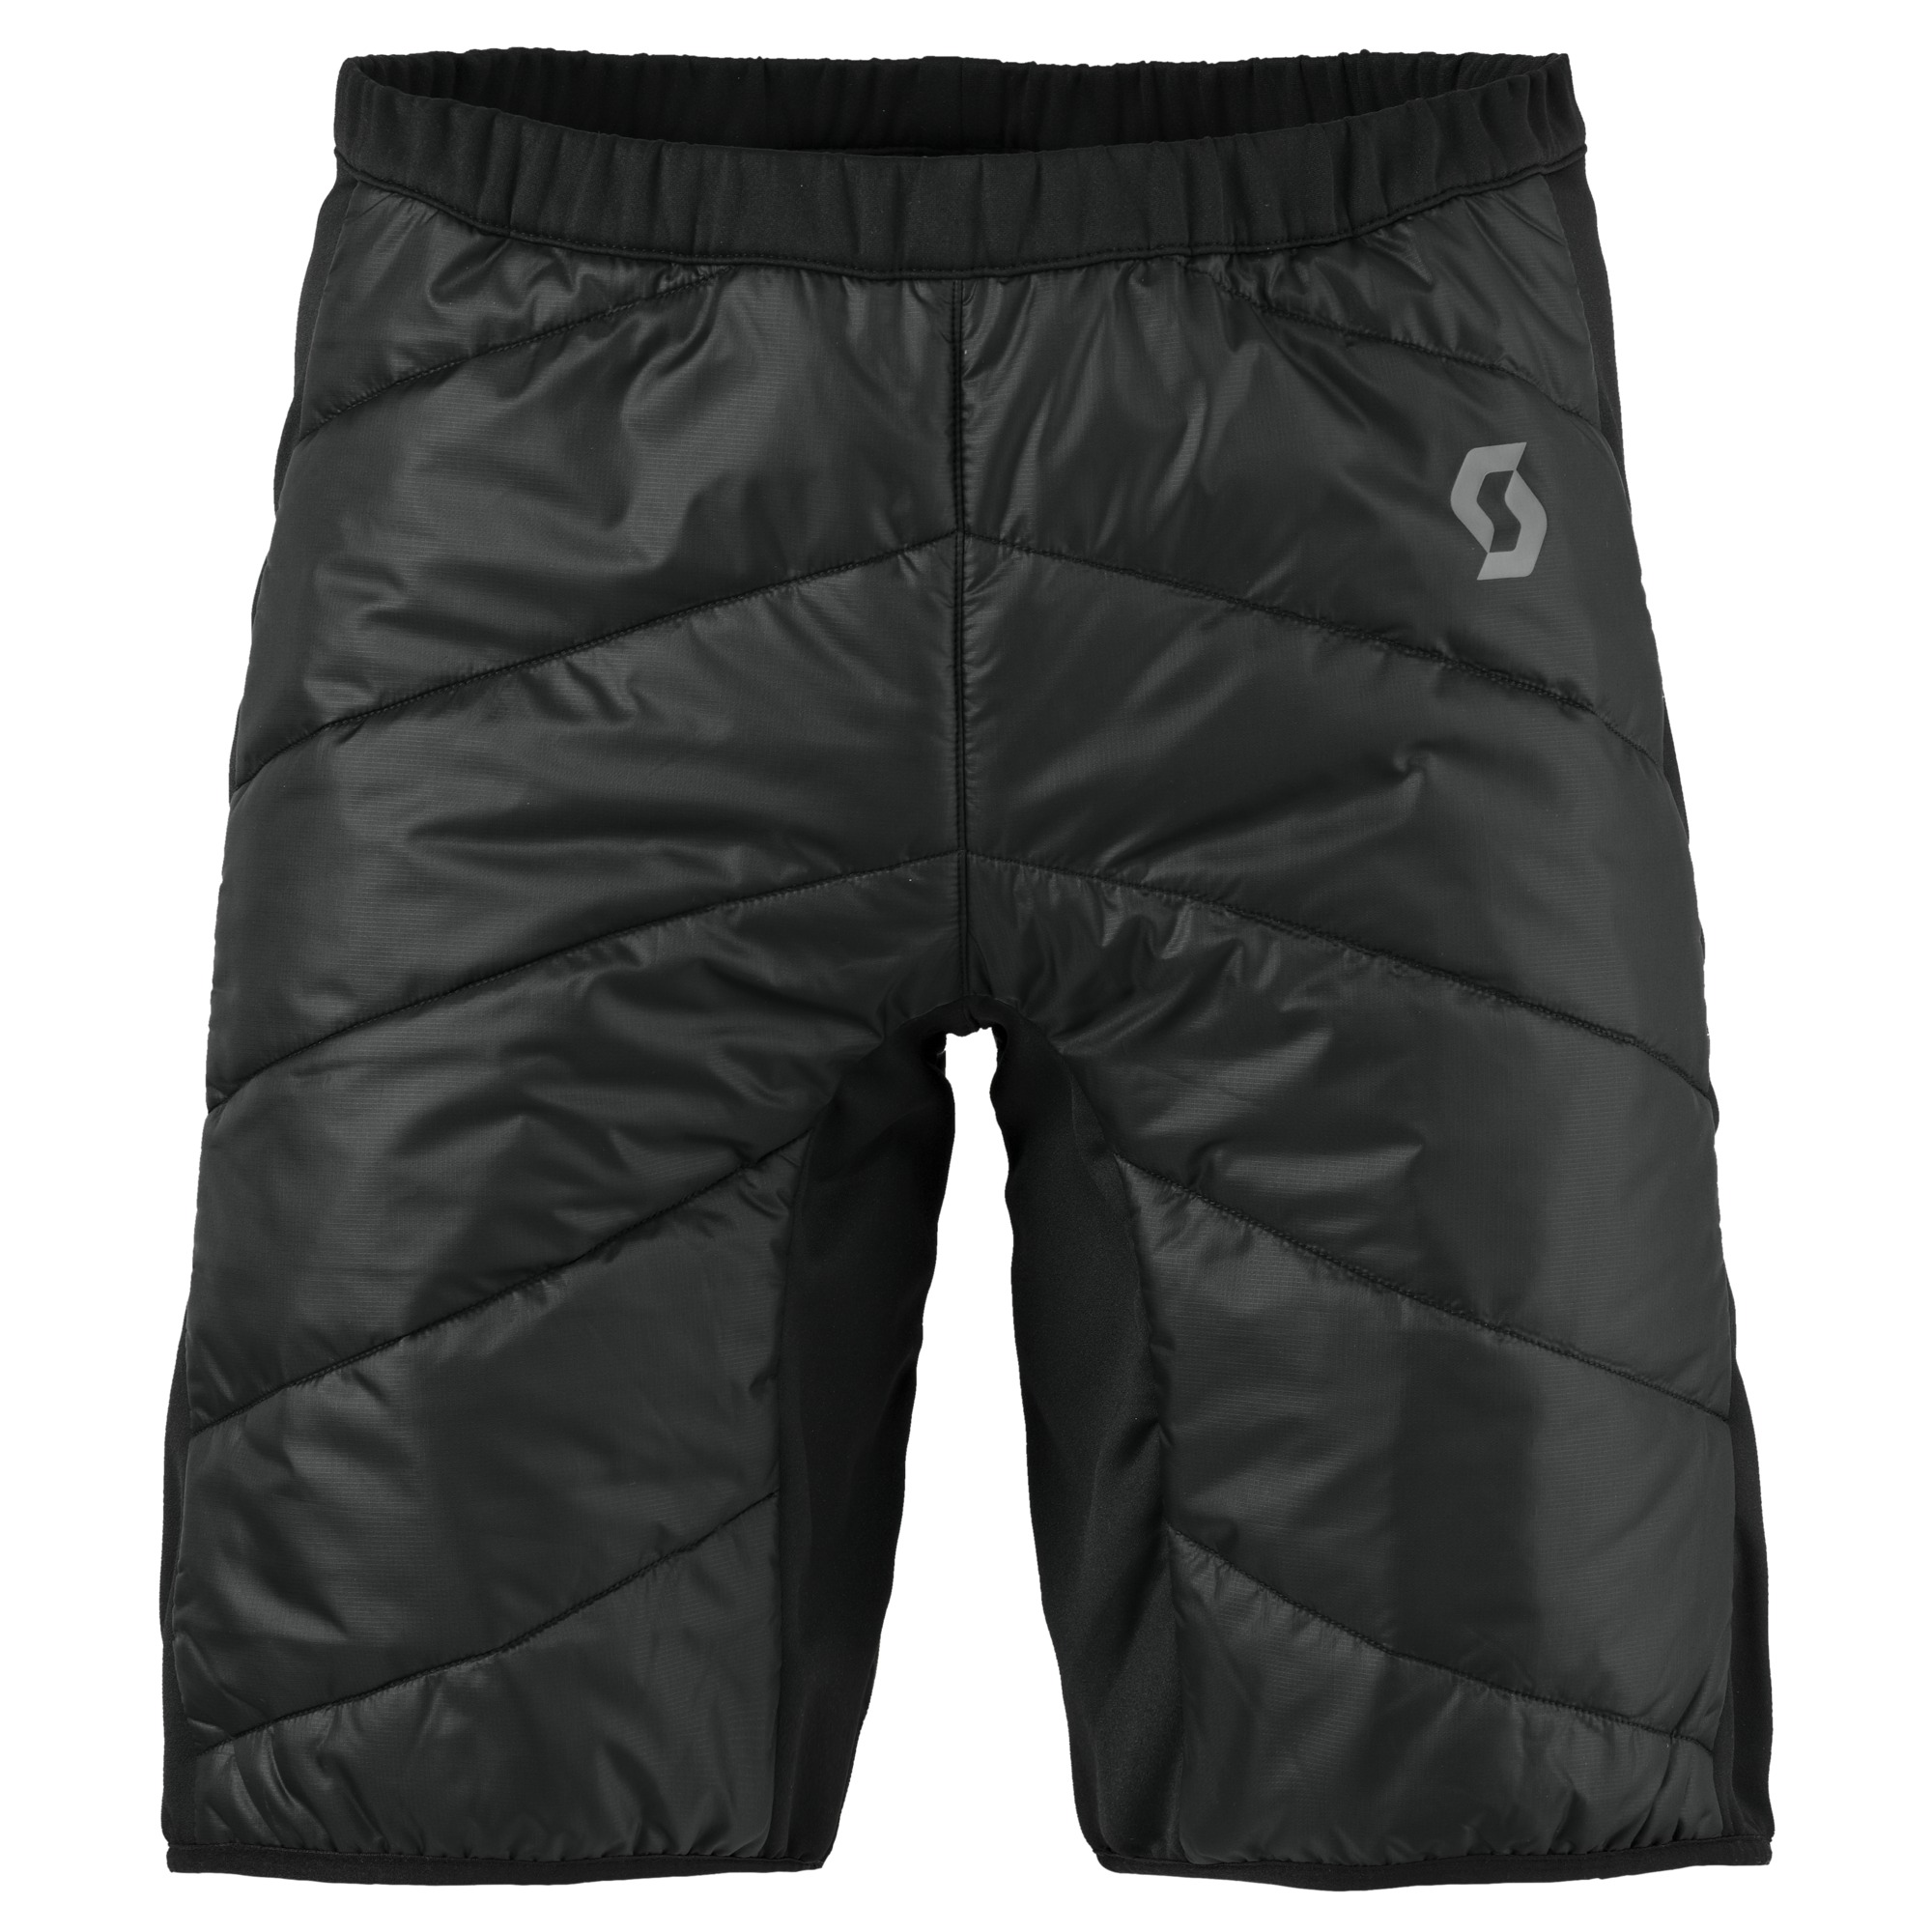 SCOTT Insuloft Light Women's Short